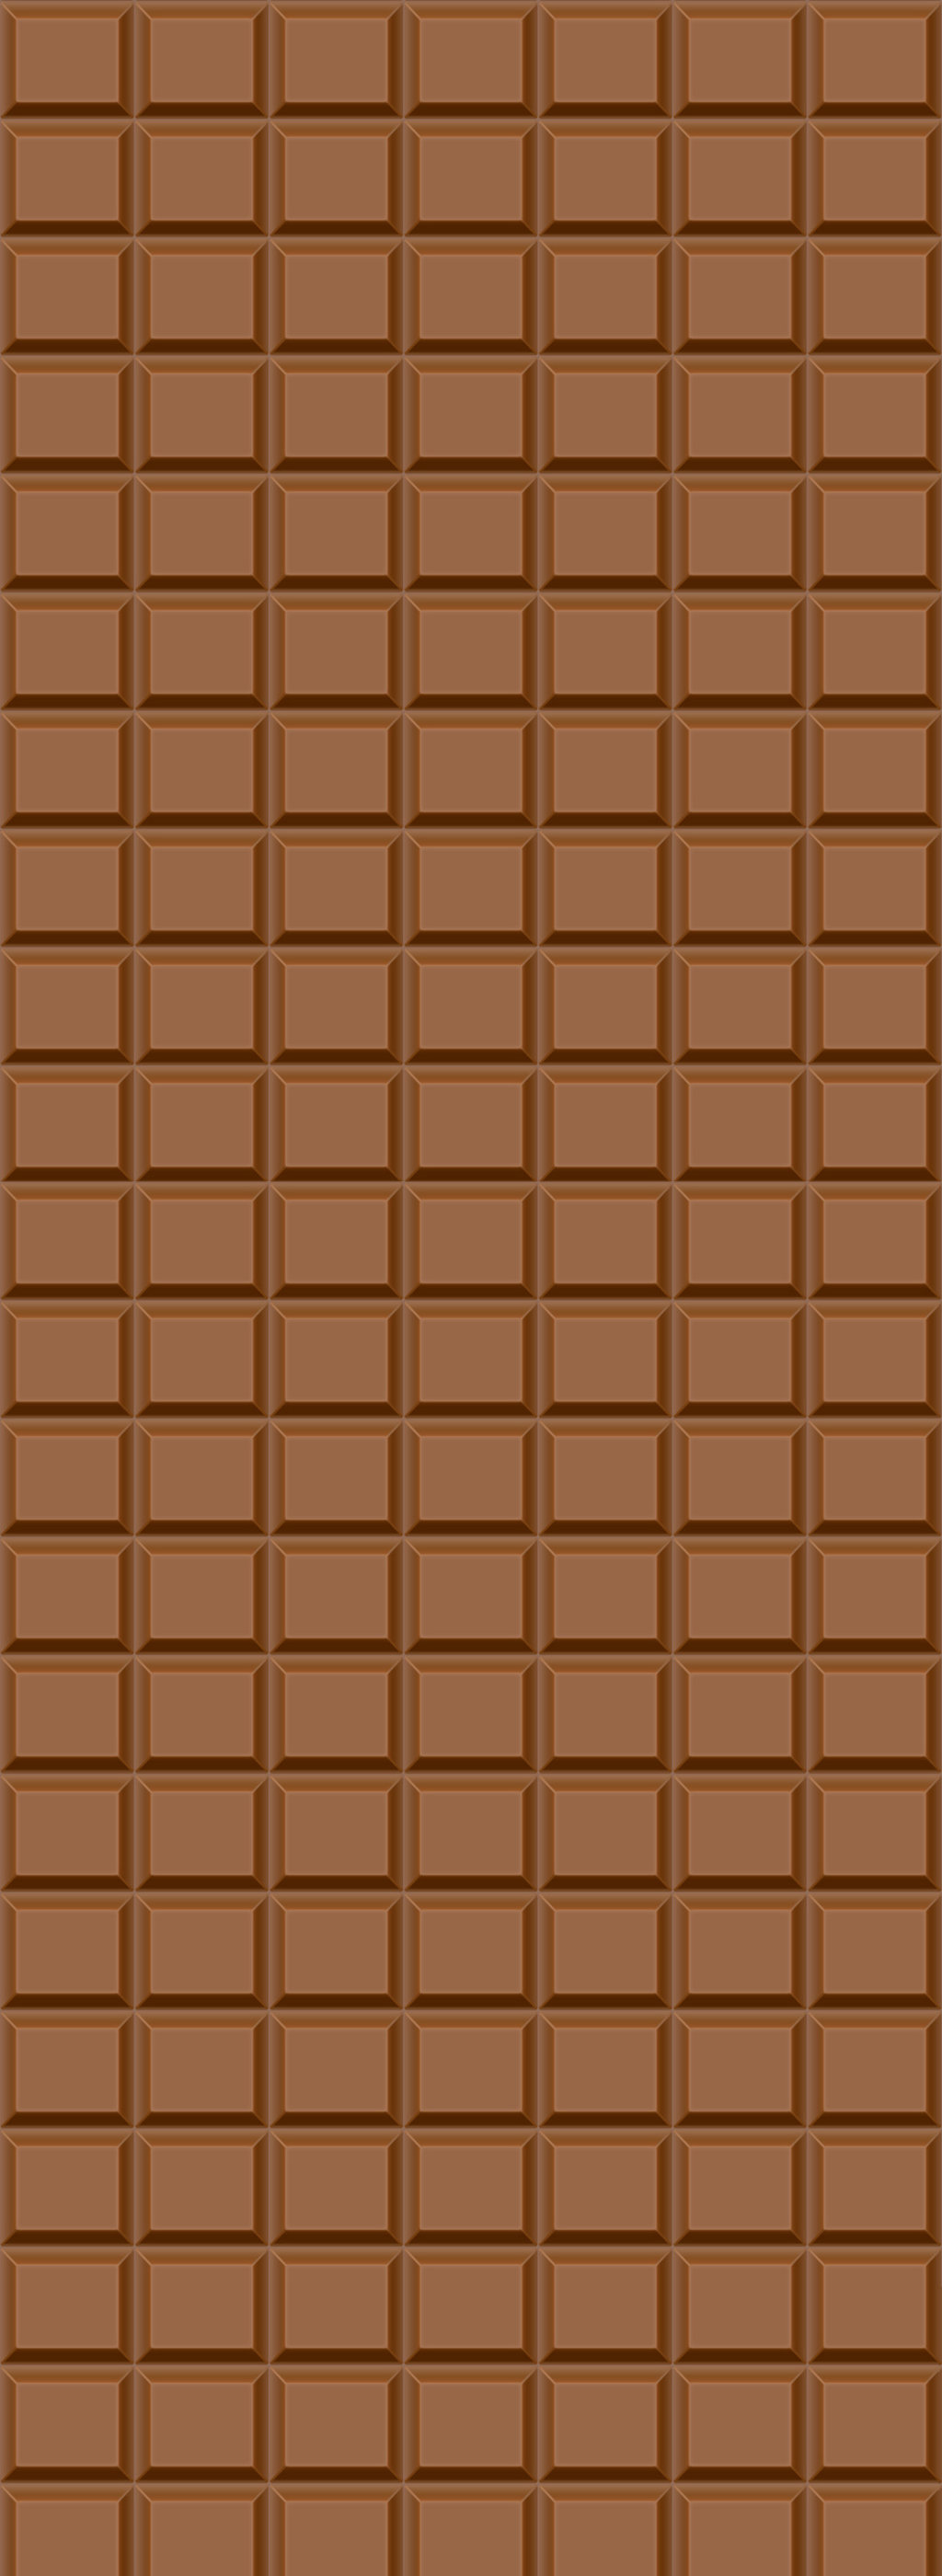 Chocolate Bar Wallpaper Chocolate bar custom box back 1024x2800